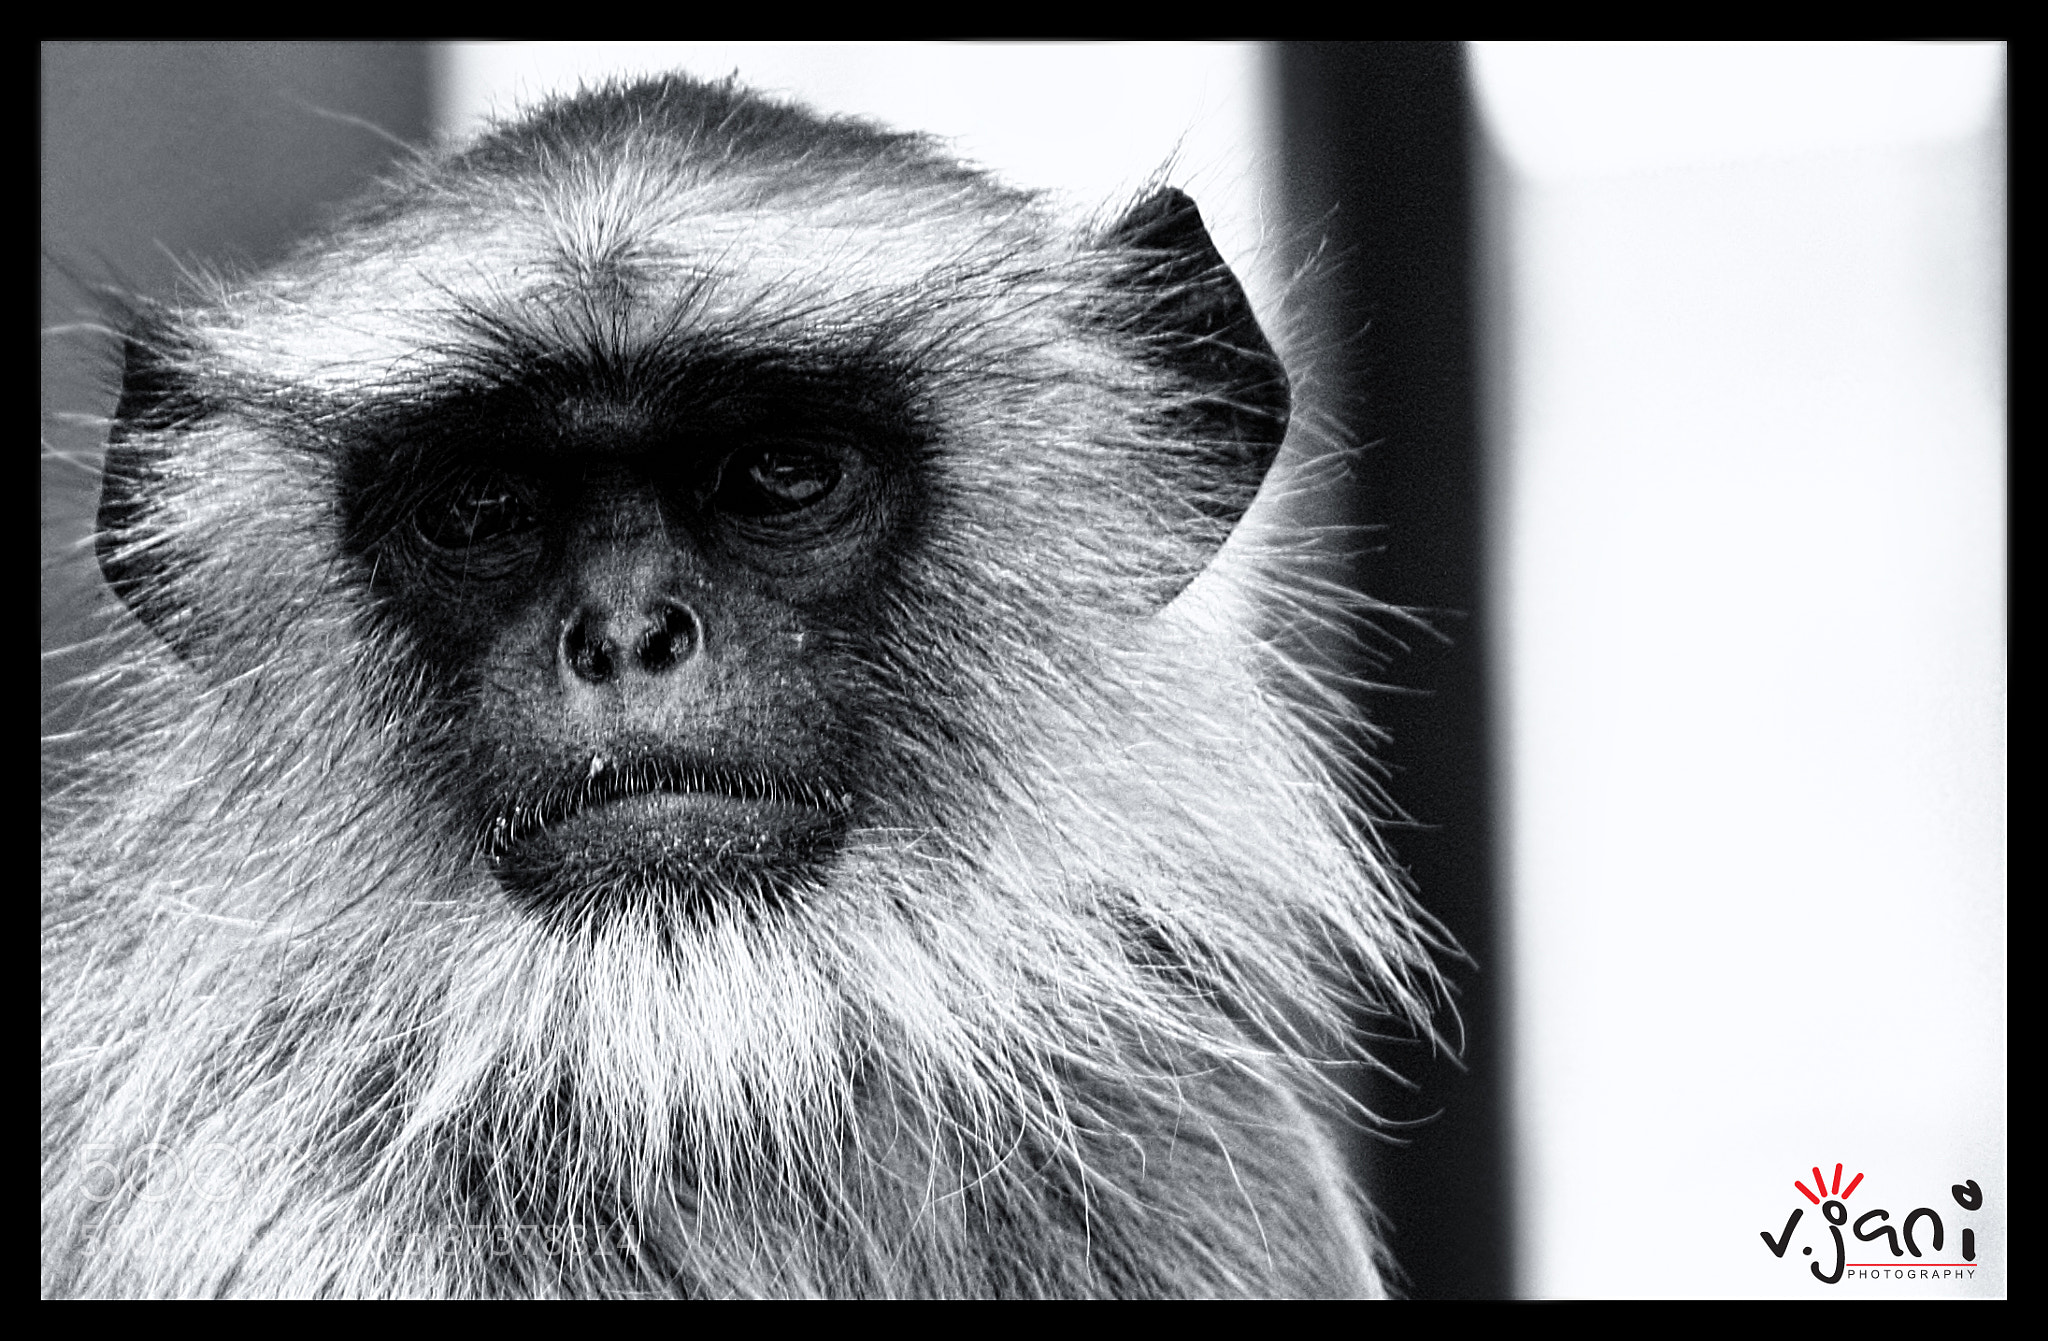 Photograph The street Monkey by vishal jani on 500px